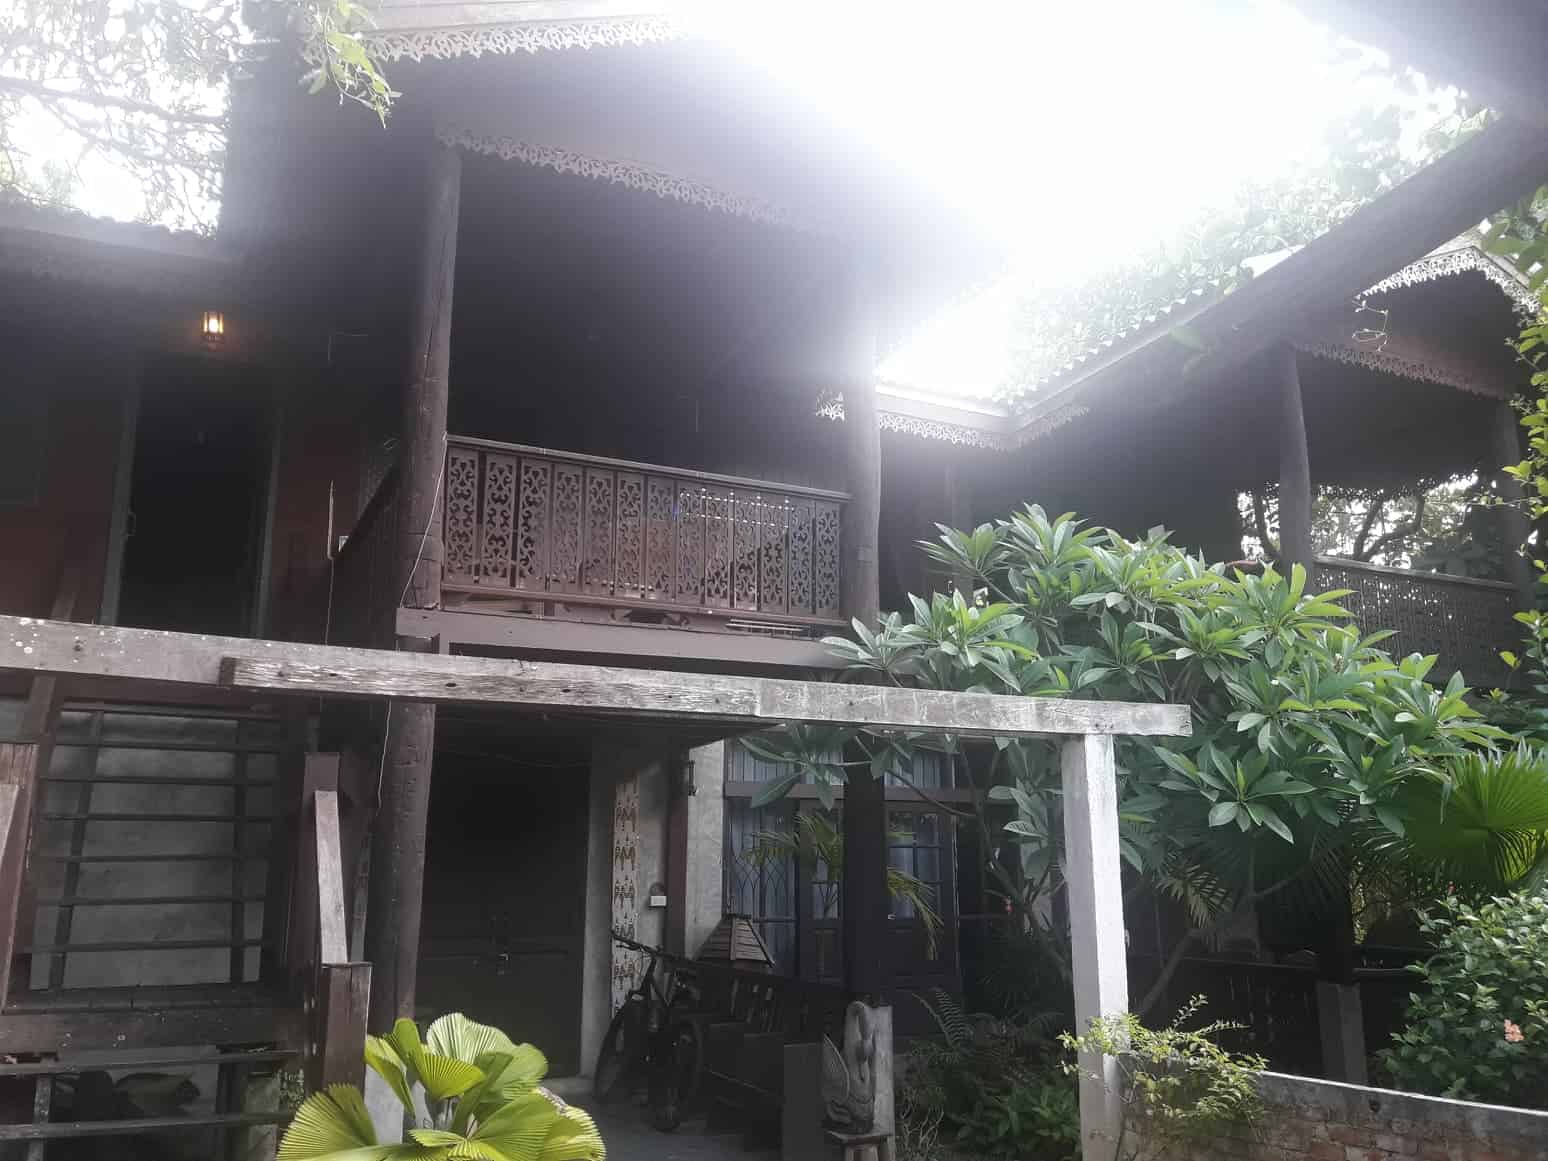 Thai style house for under $200 per month